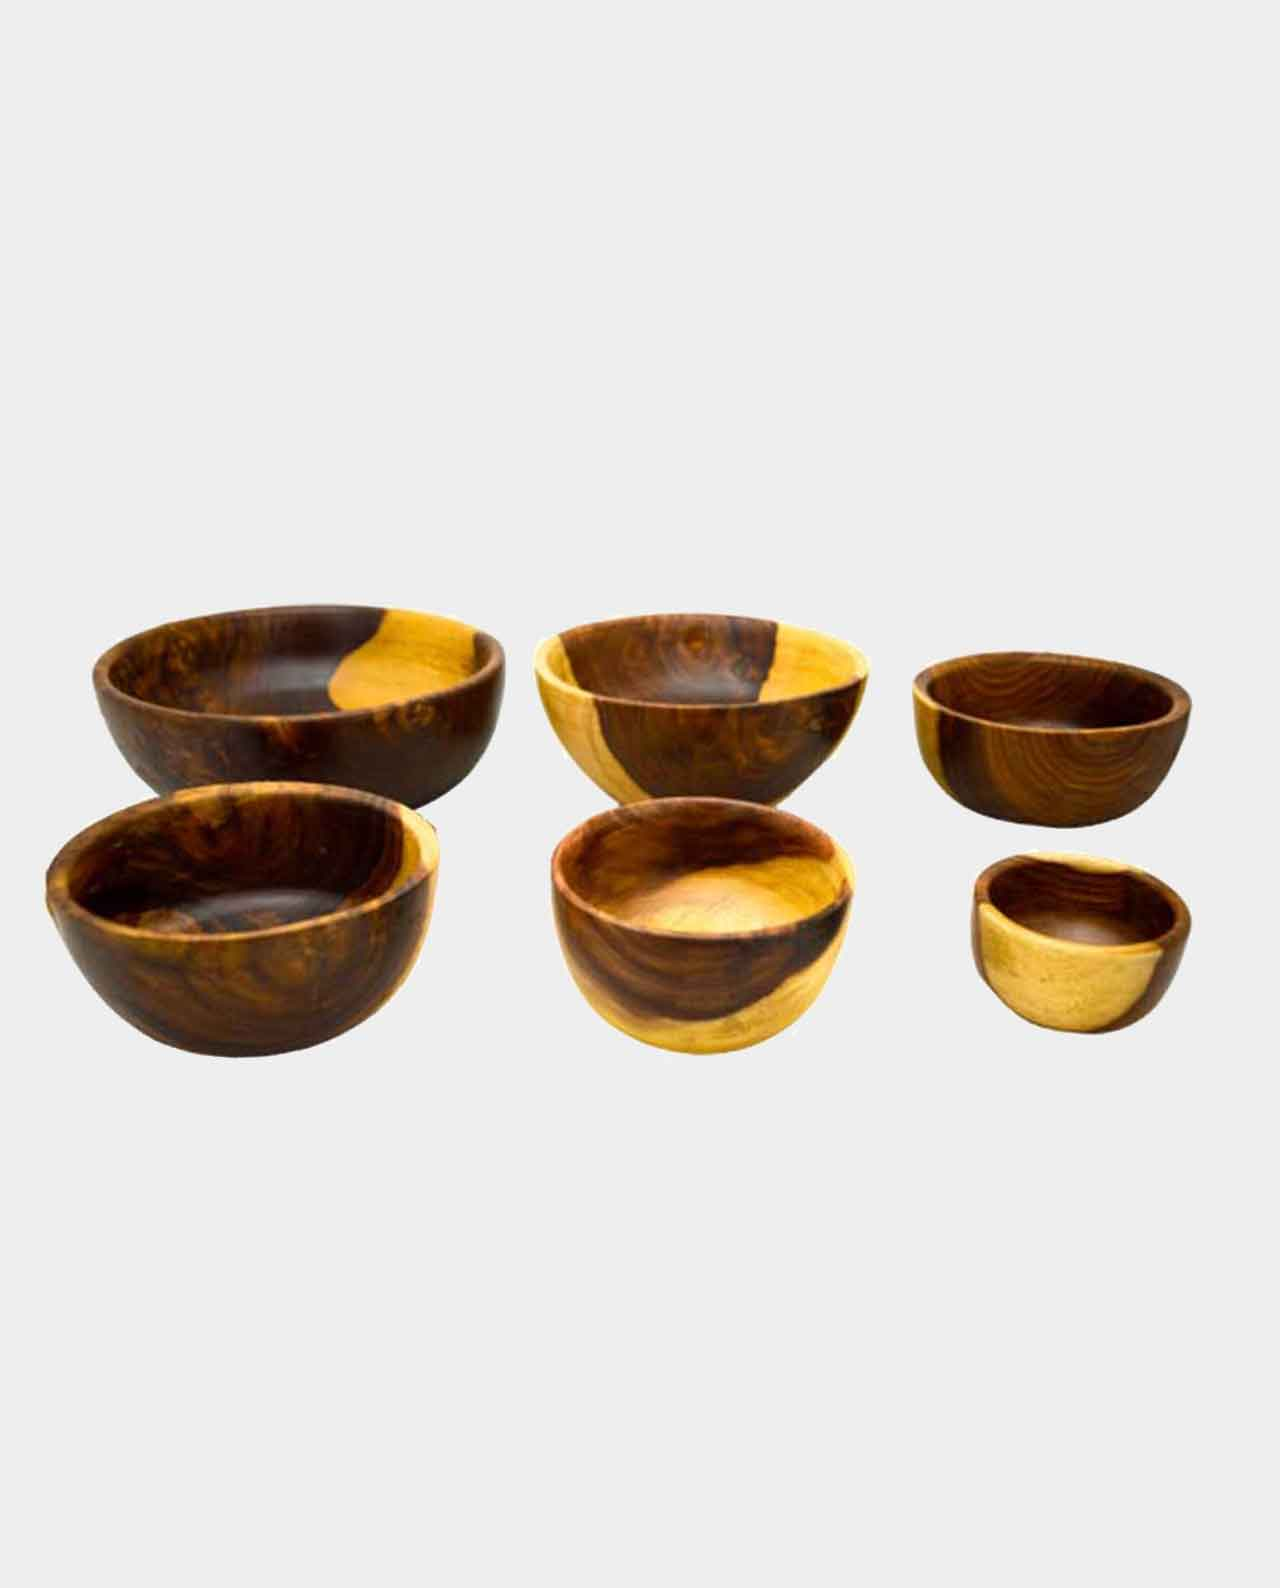 6 Piece Natural Wooden Bowl Handmade of Asersus with the original texture and color of the tree trunk